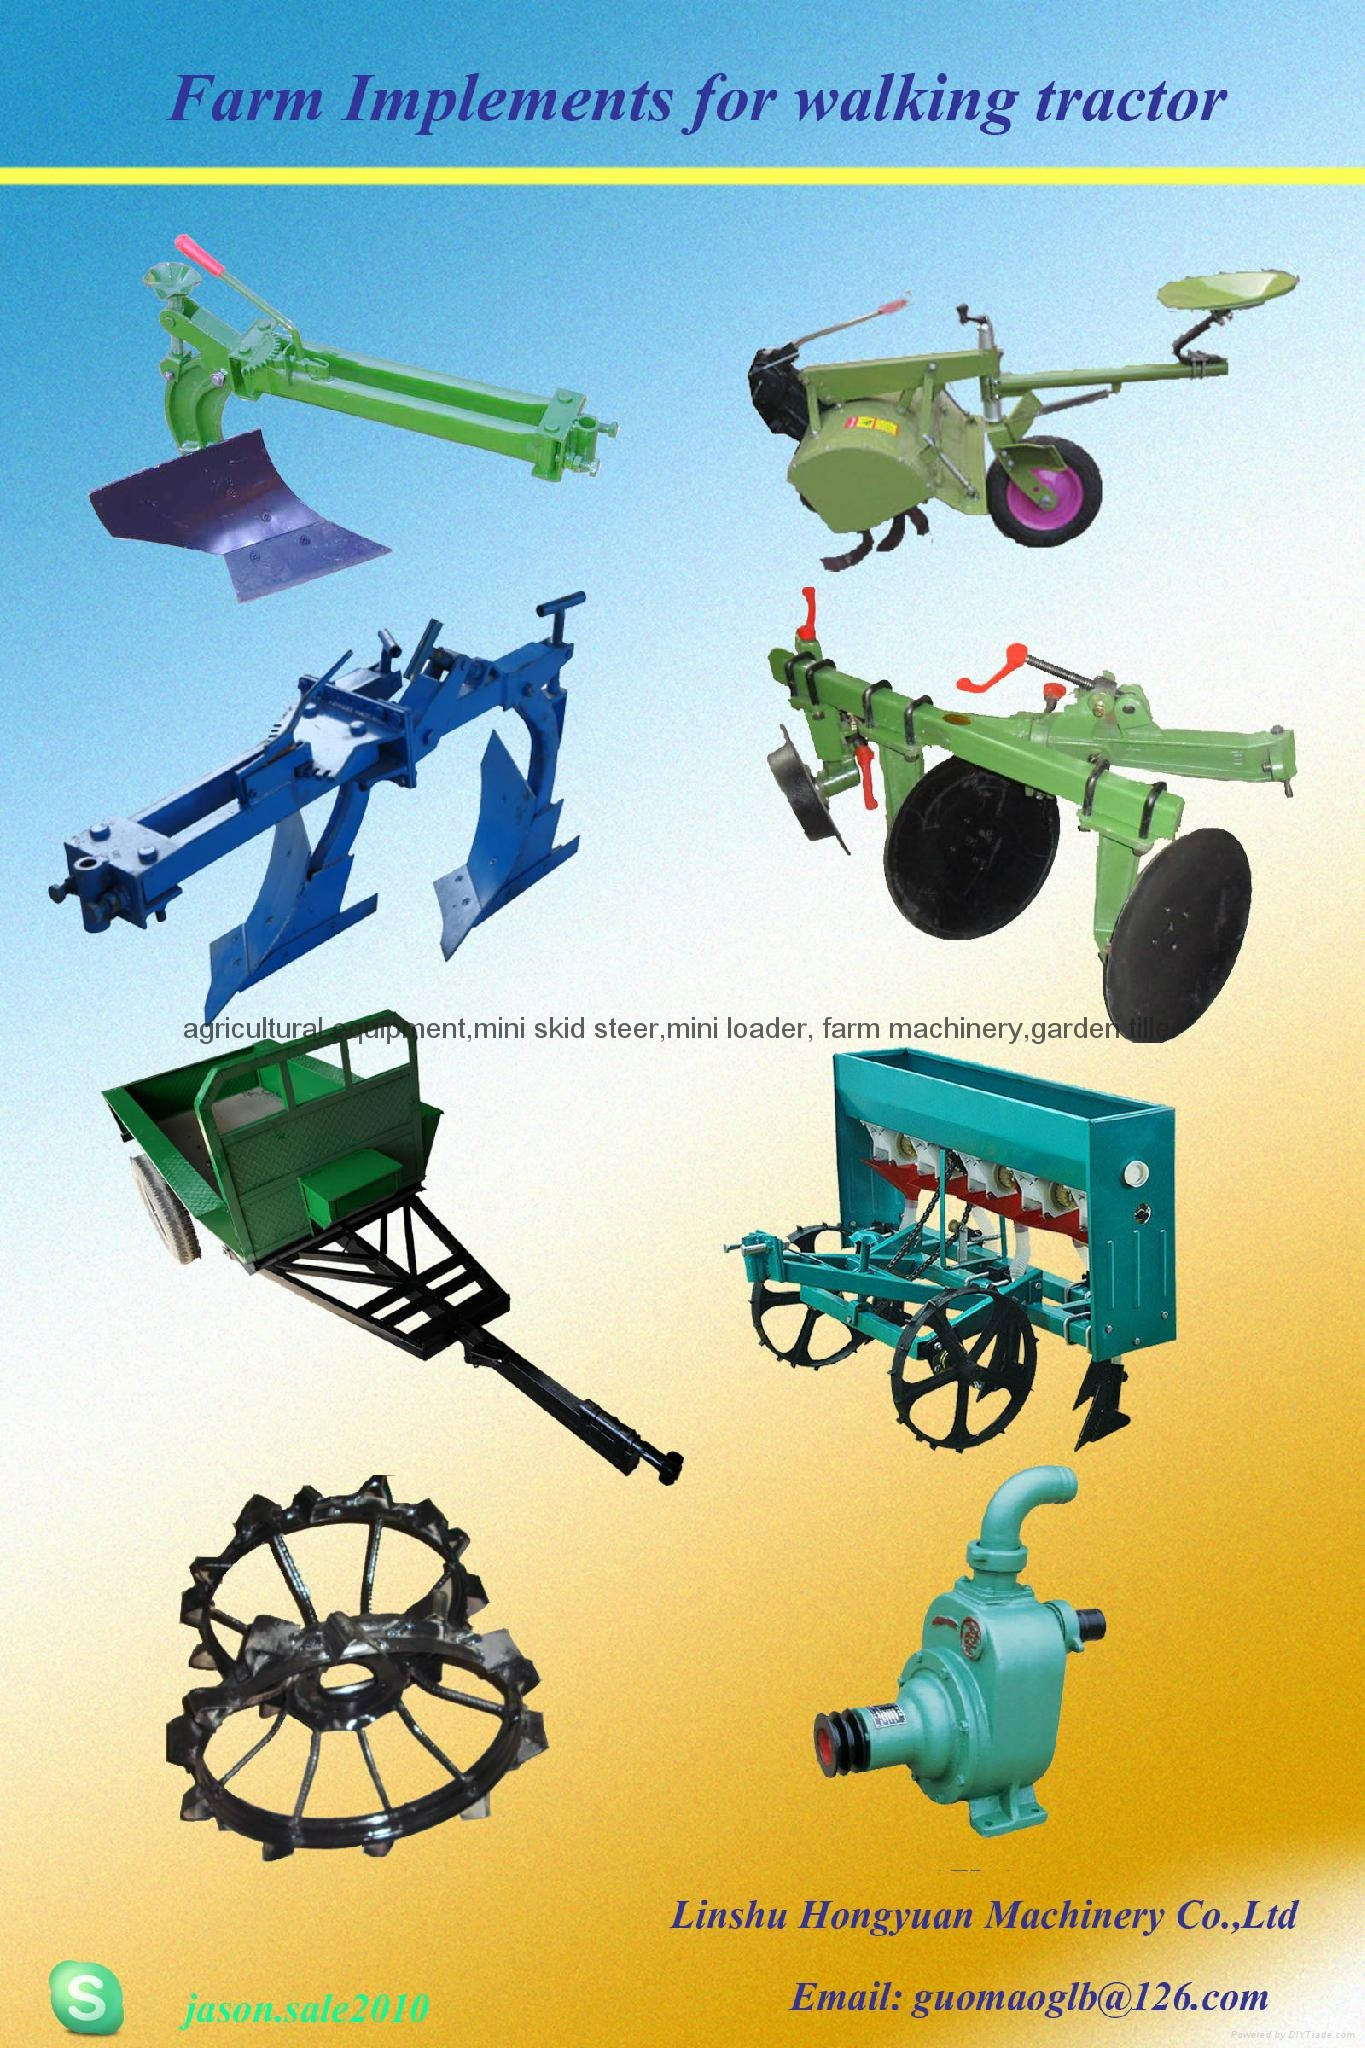 farm implements for walking tractor 2